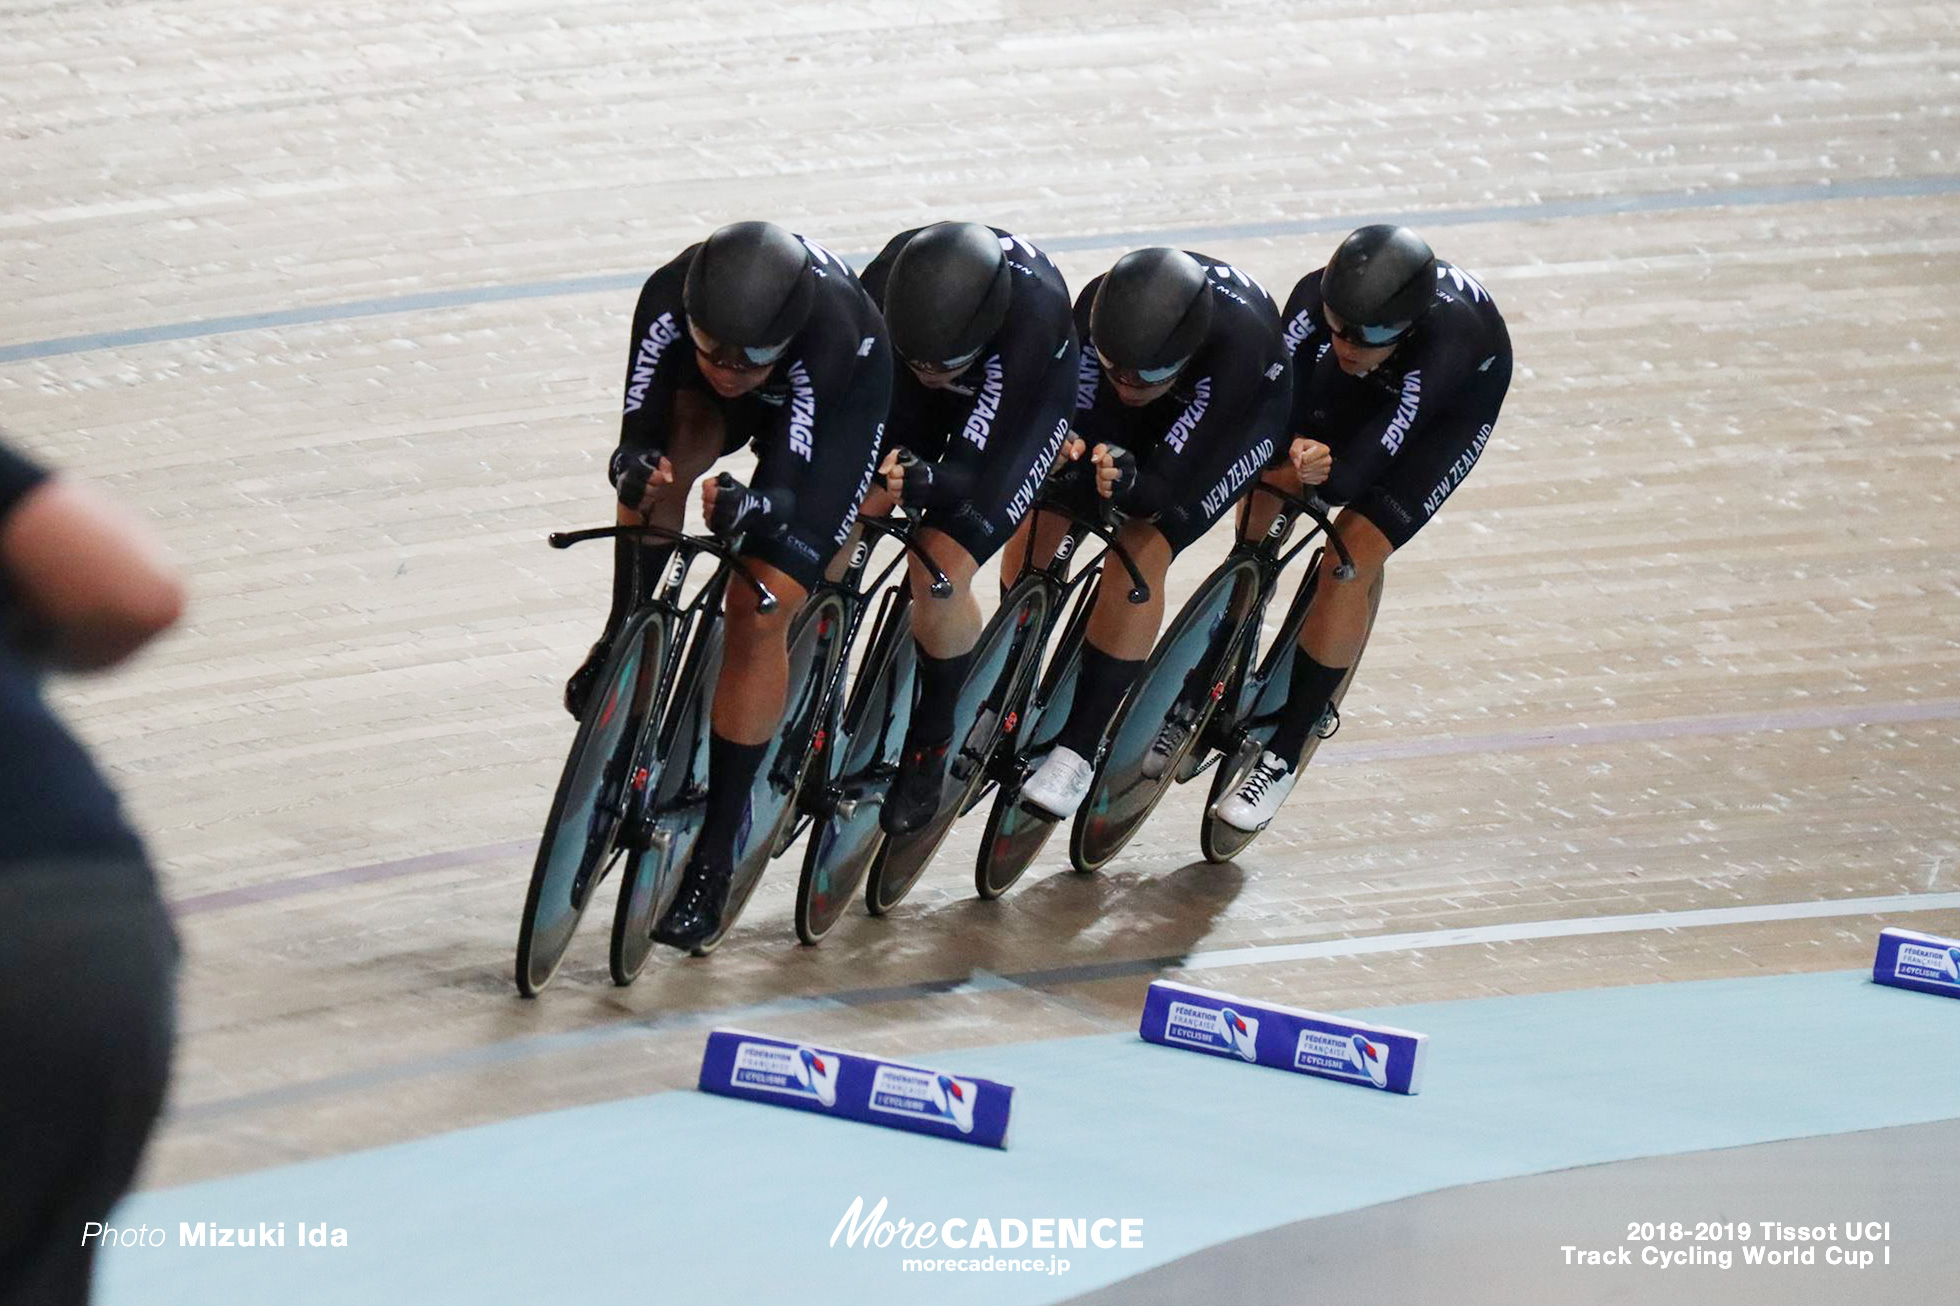 2018-2019 TRACK CYCLING WORLD CUP I Women's Team Pursuit